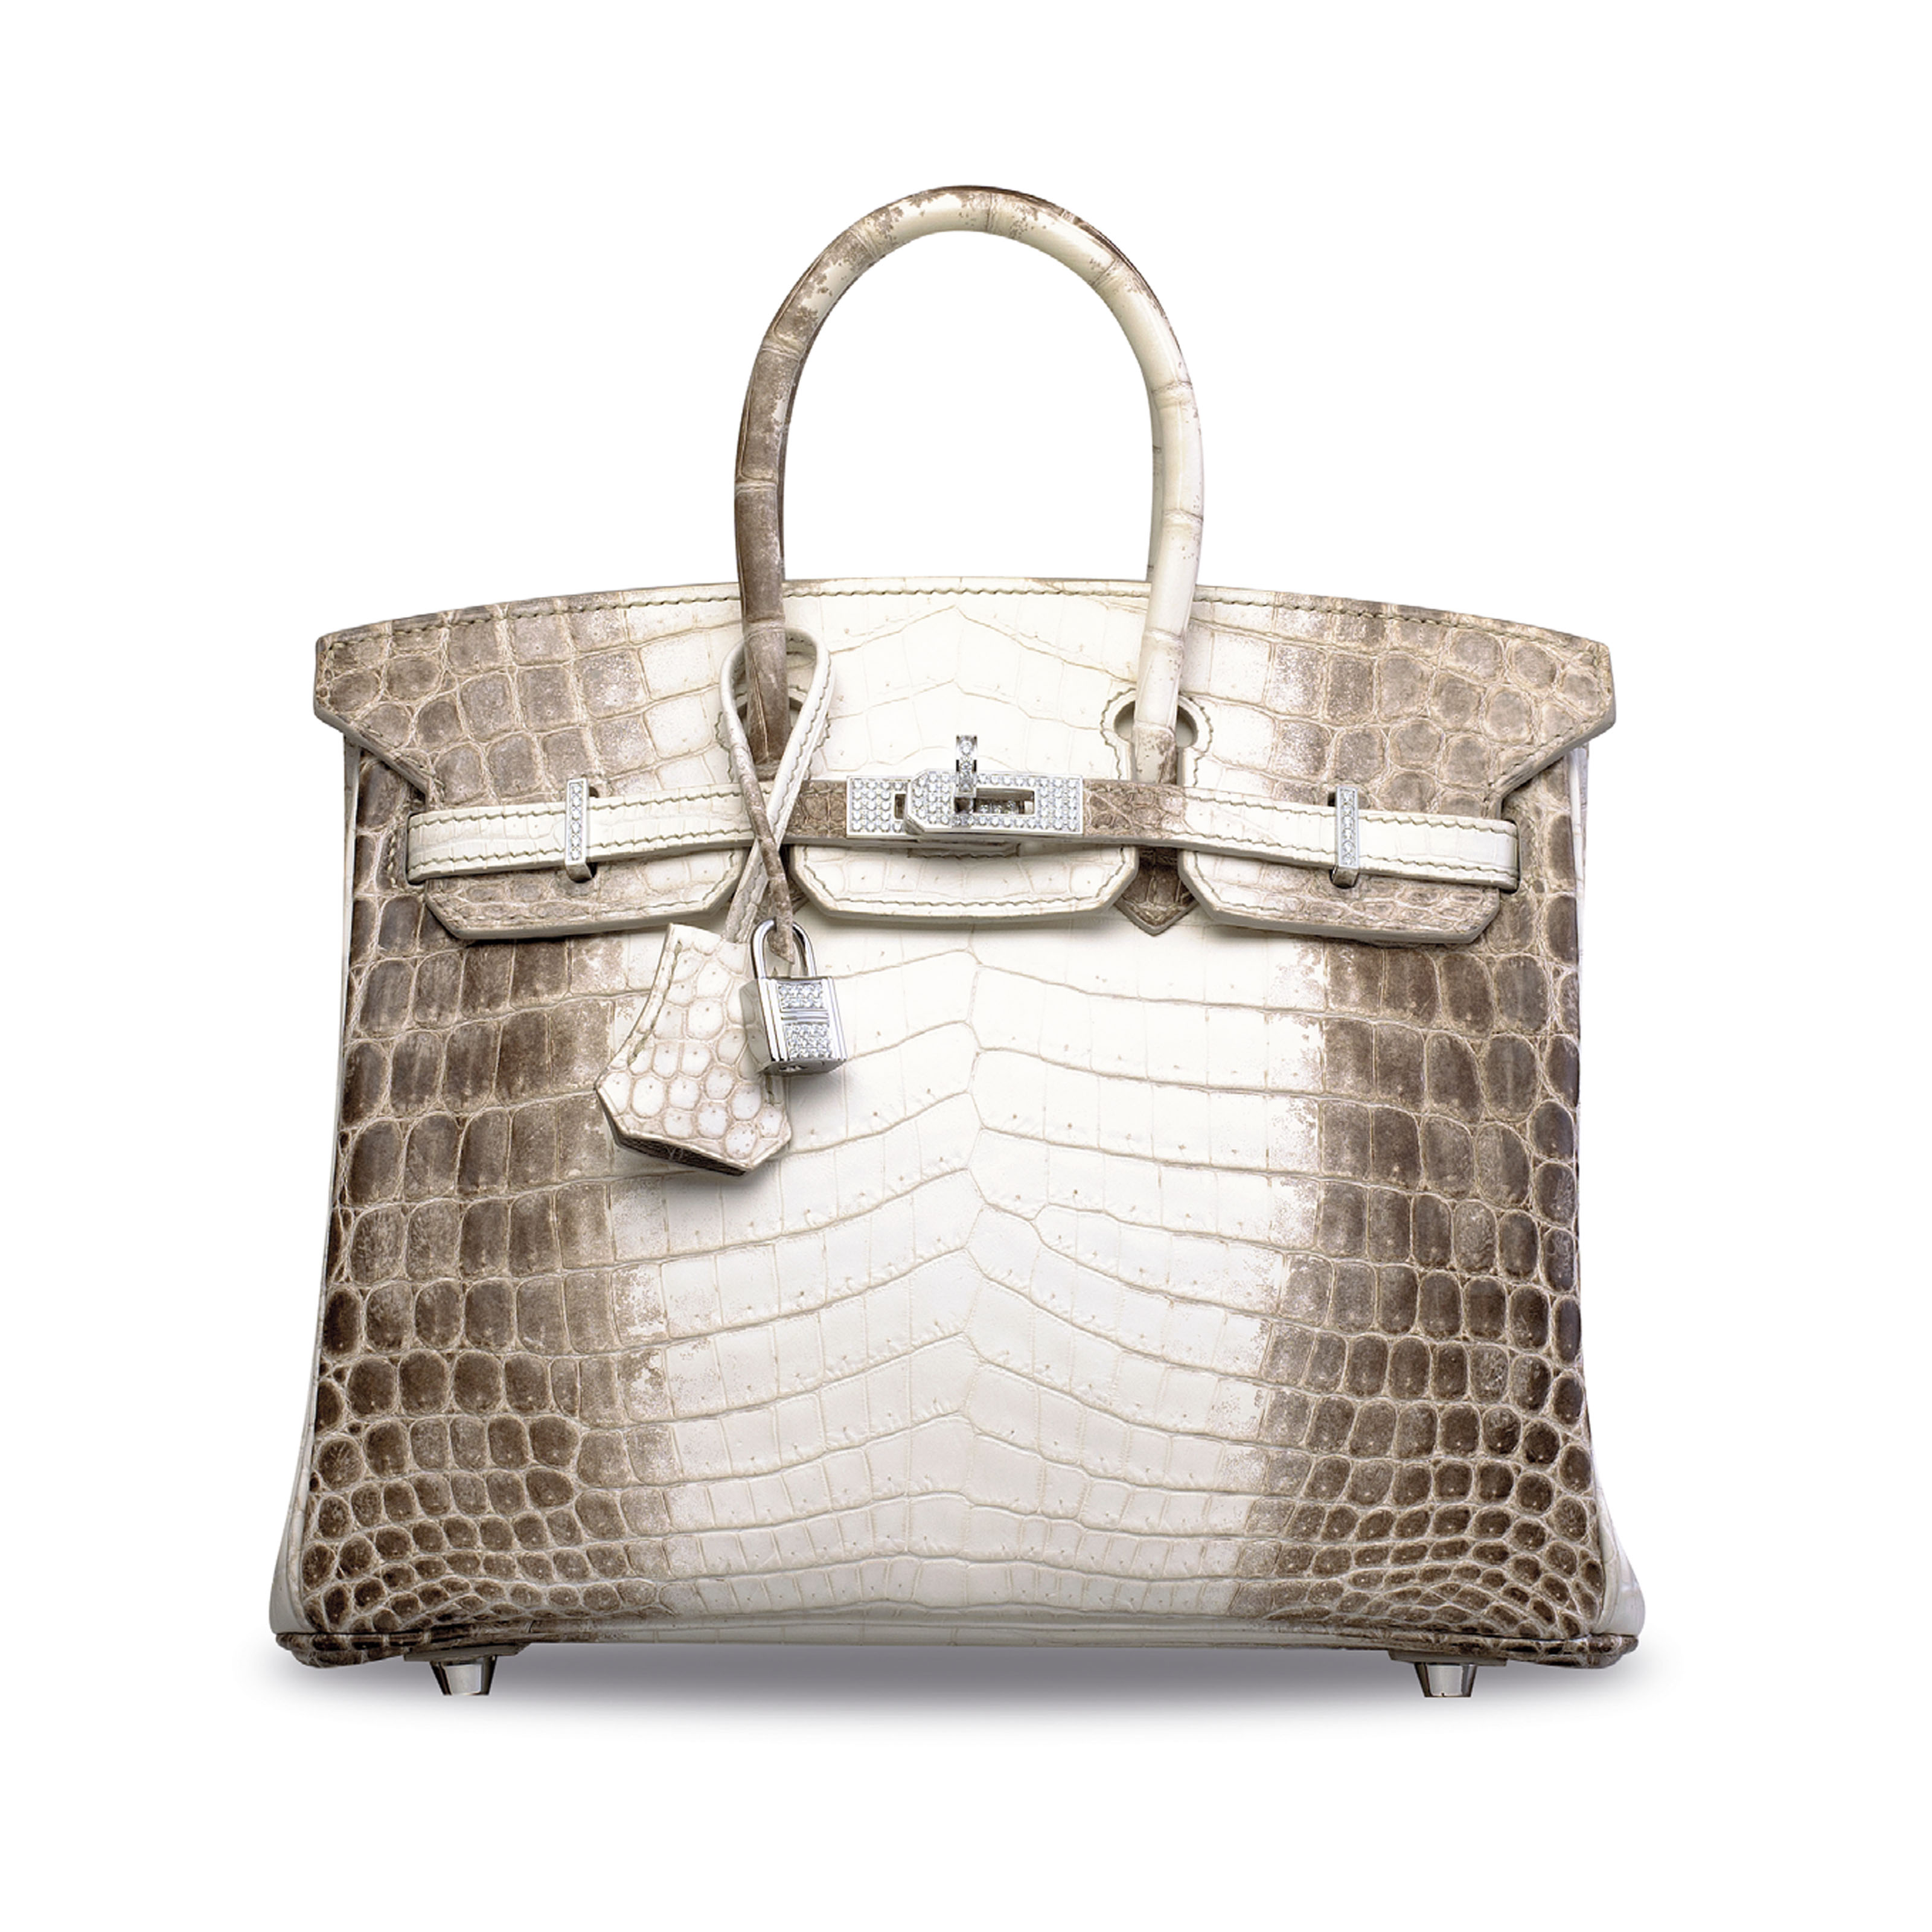 AN EXCEPTIONAL, MATTE WHITE HIMALAYA NILOTICUS CROCODILE DIAMOND BIRKIN 25 WITH 18K WHITE GOLD & DIAMOND HARDWARE